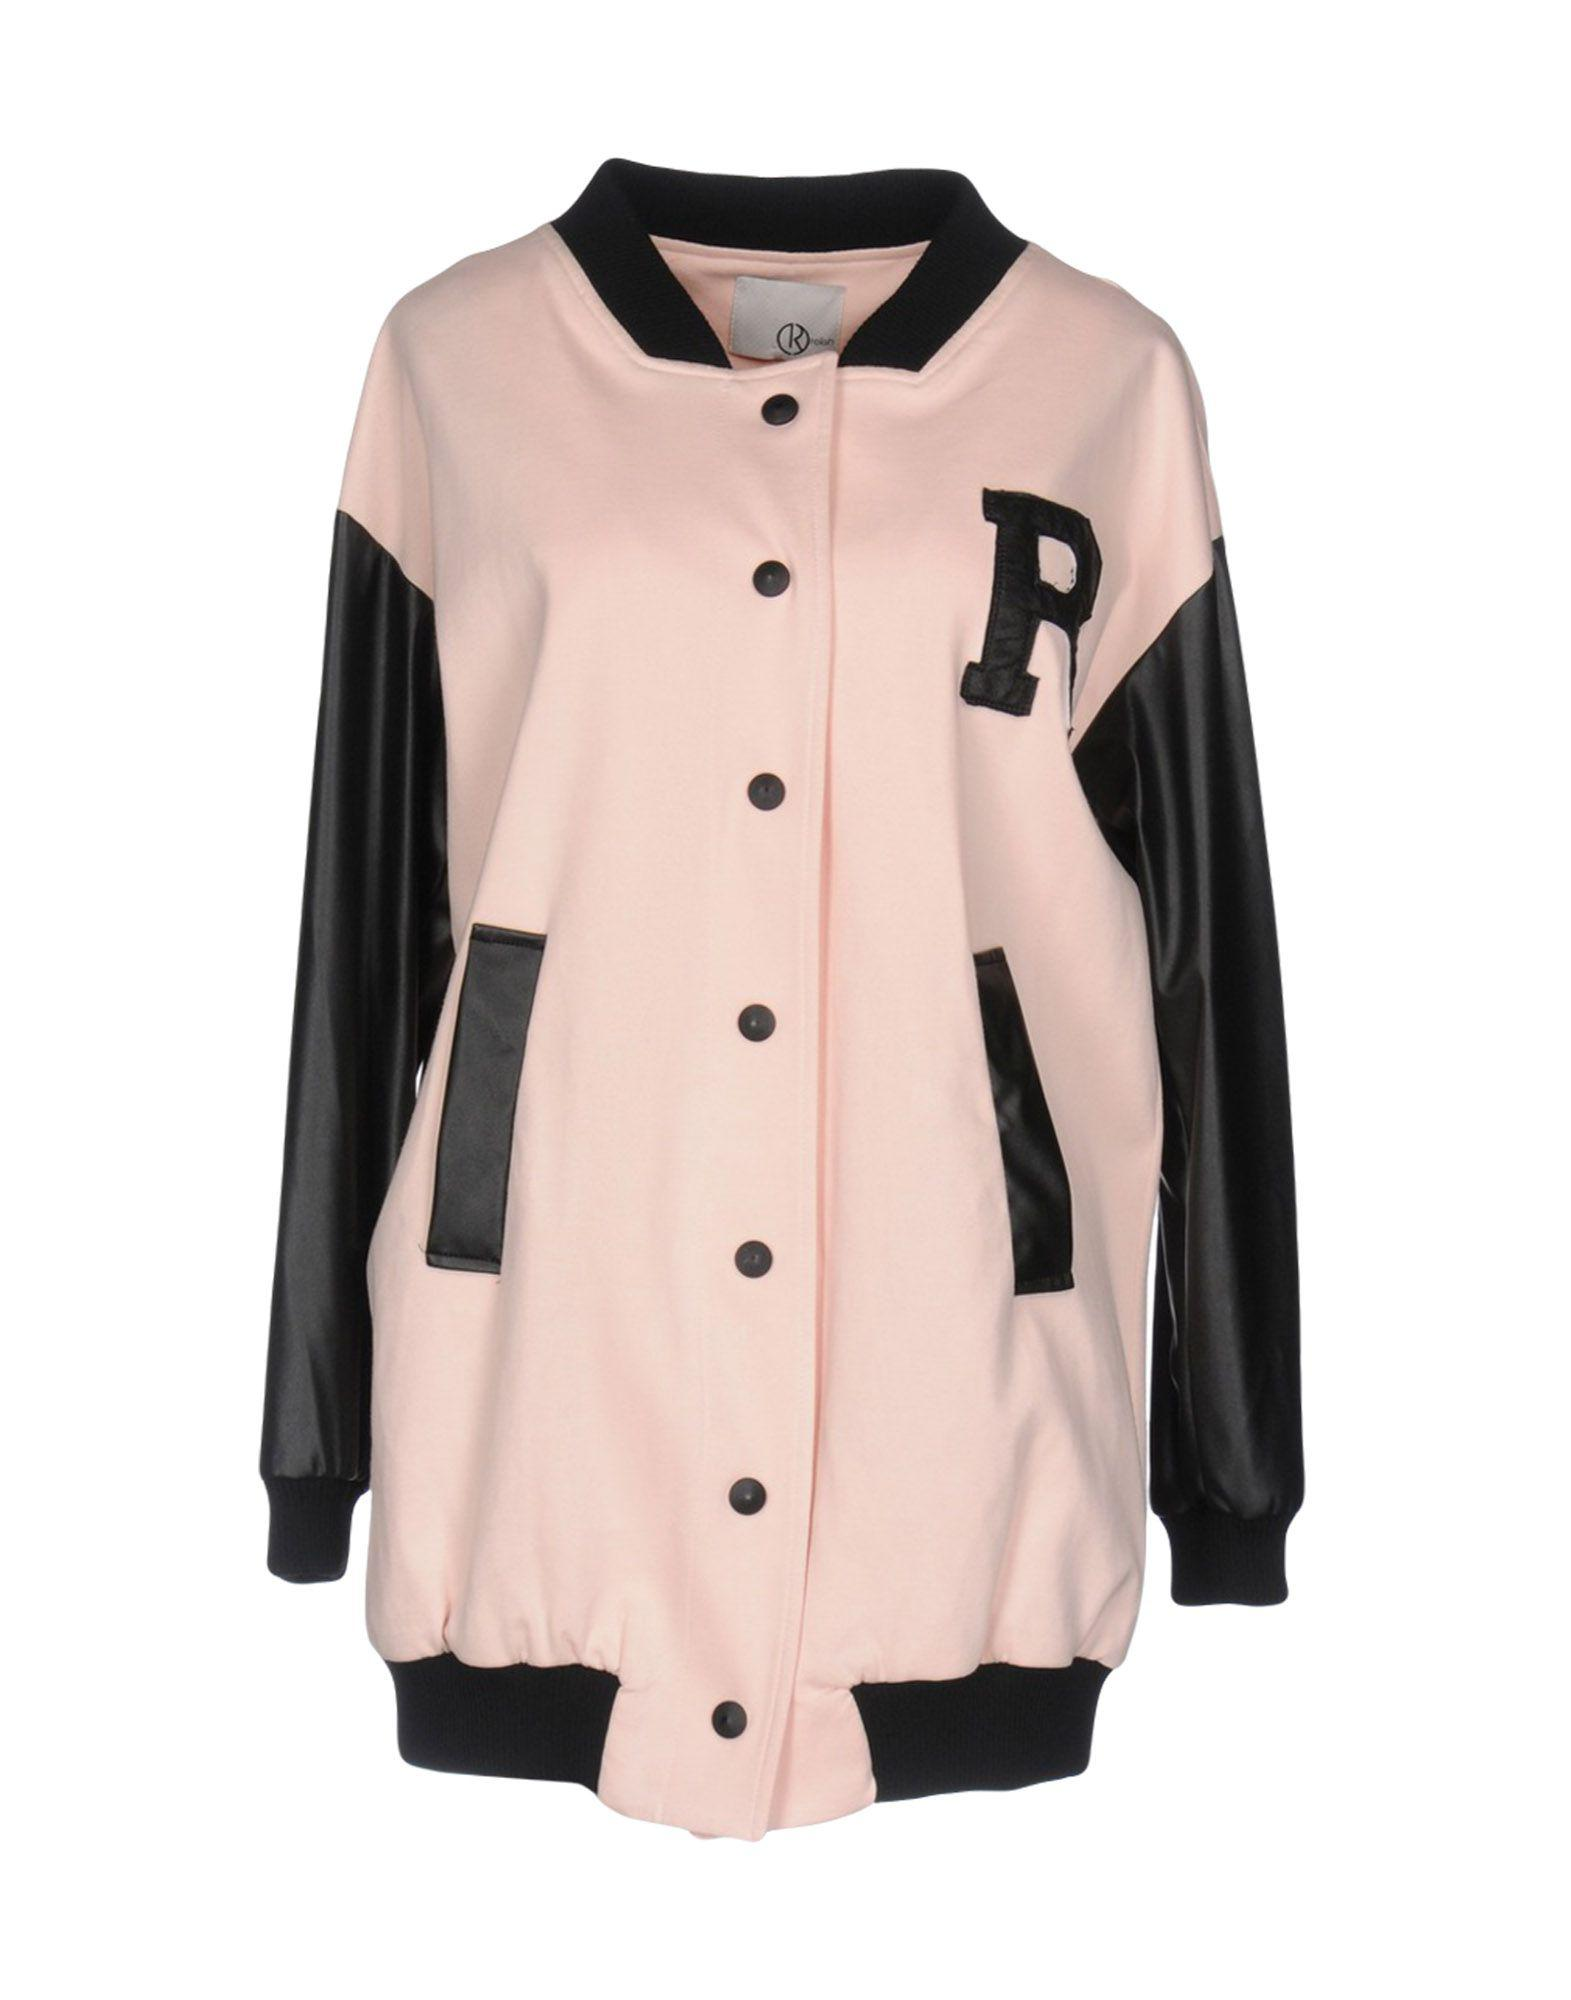 Lyst - Relish Jacket in Pink